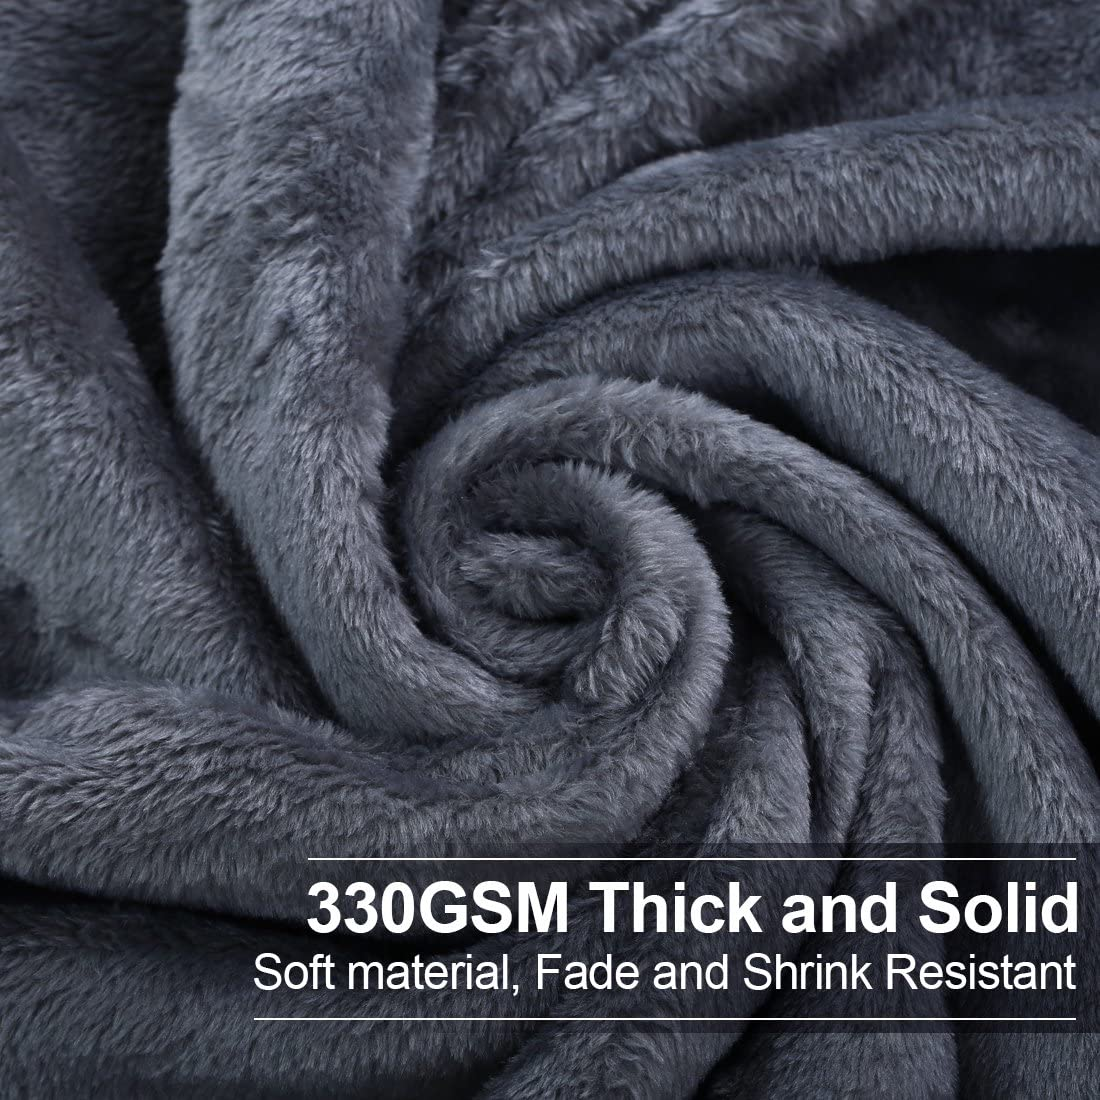 Soft Twin Size Blanket All Season Warm Fuzzy Microplush Lightweight Thermal Fleece Blankets for Couch Bed Sofa,66x90 Inches,Chocolate